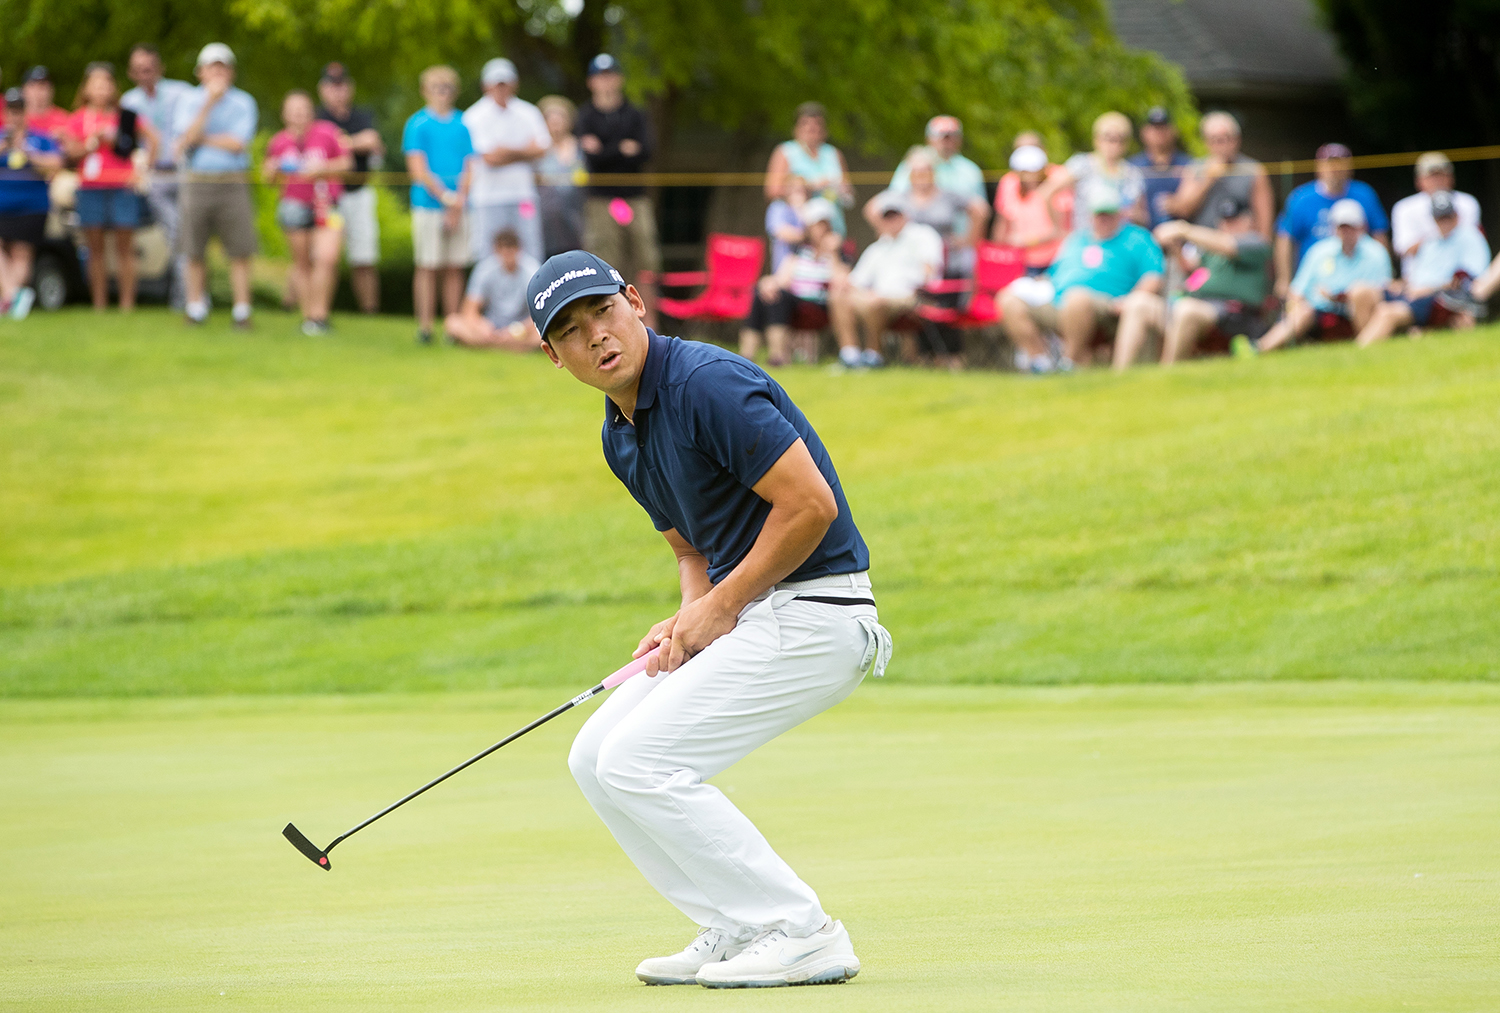 Xinjun Zhang reacts as the potentially championship-winning birdie putt just misses on the 18th green during the fourth round of Web.com Tour's Lincoln Land Championship presented by LRS Sunday, June 16, 2019. Zhang went on to win a three-hole playoff against Dylan Wu. [Ted Schurter/The State Journal-Register]